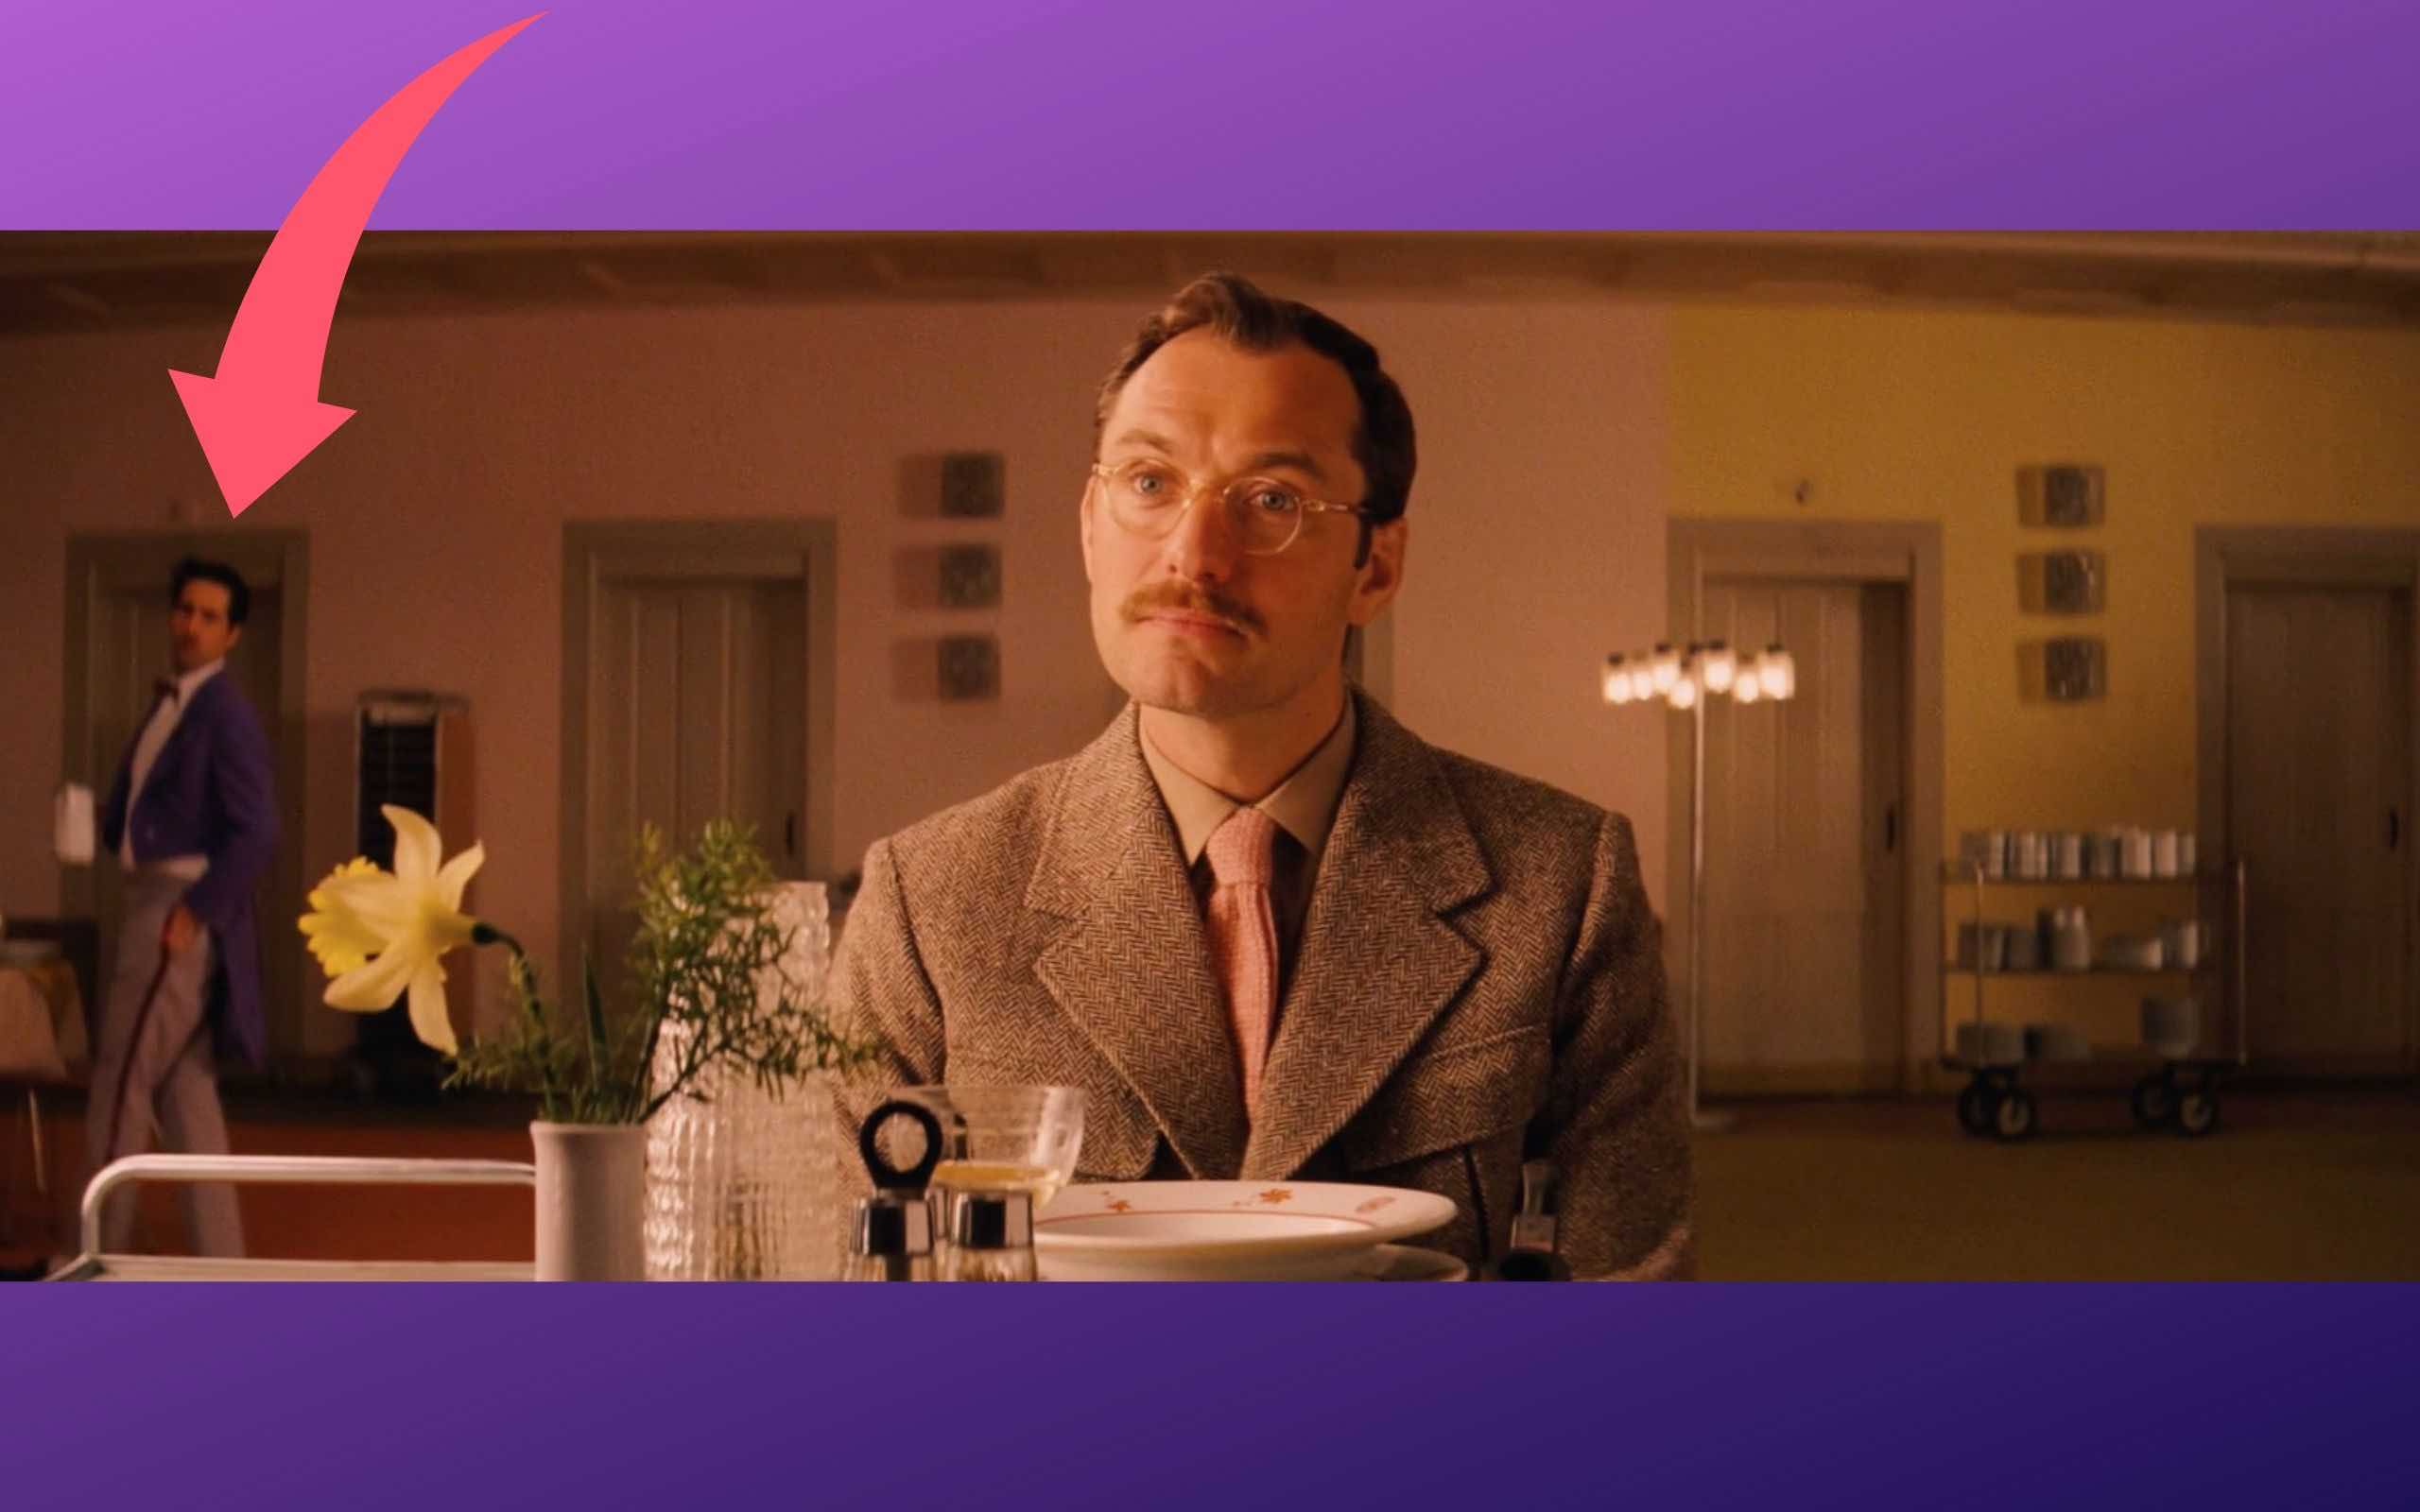 wes anderson - the grand budapest hotel - StudioBinder shot list